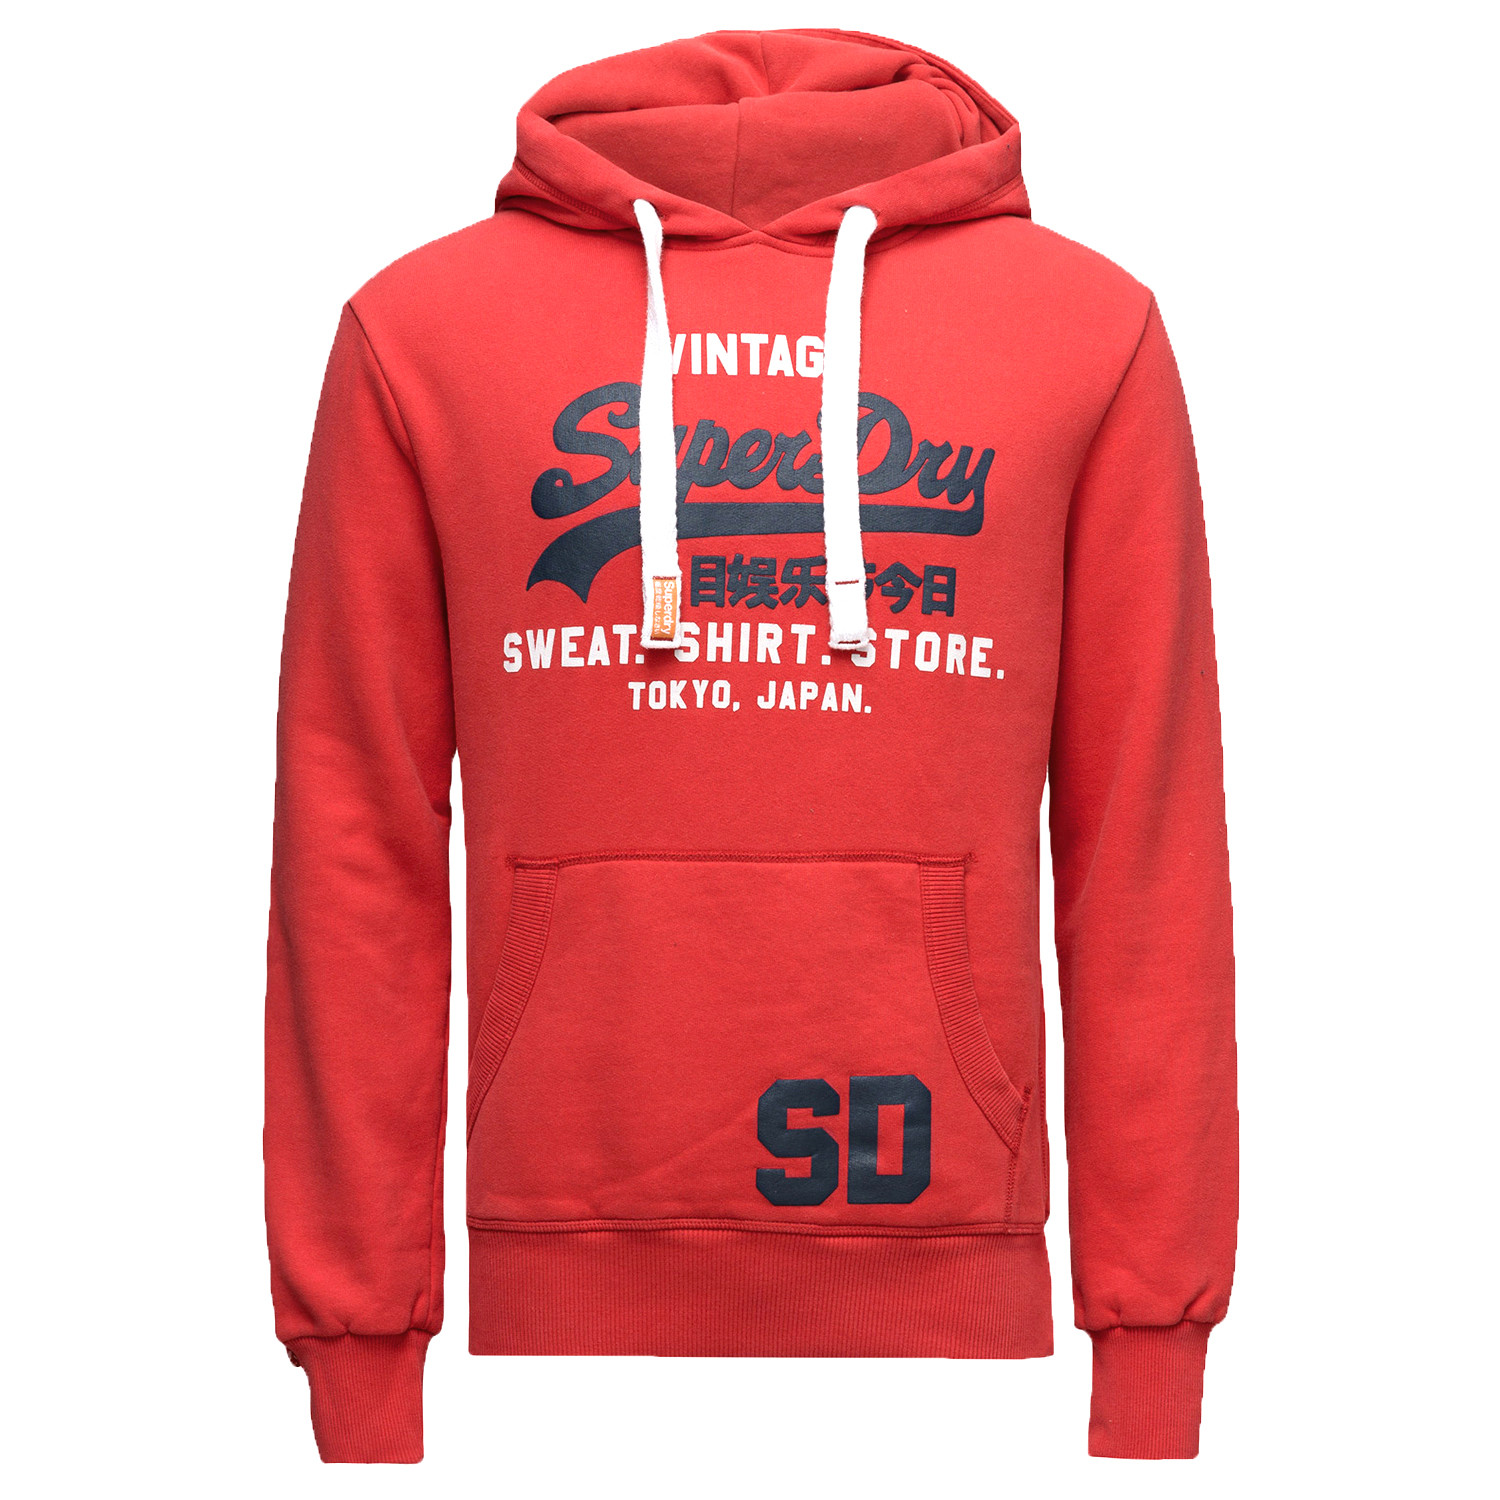 sweat shirt store sweat capuche homme superdry rouge pas cher sweats capuche homme superdry. Black Bedroom Furniture Sets. Home Design Ideas